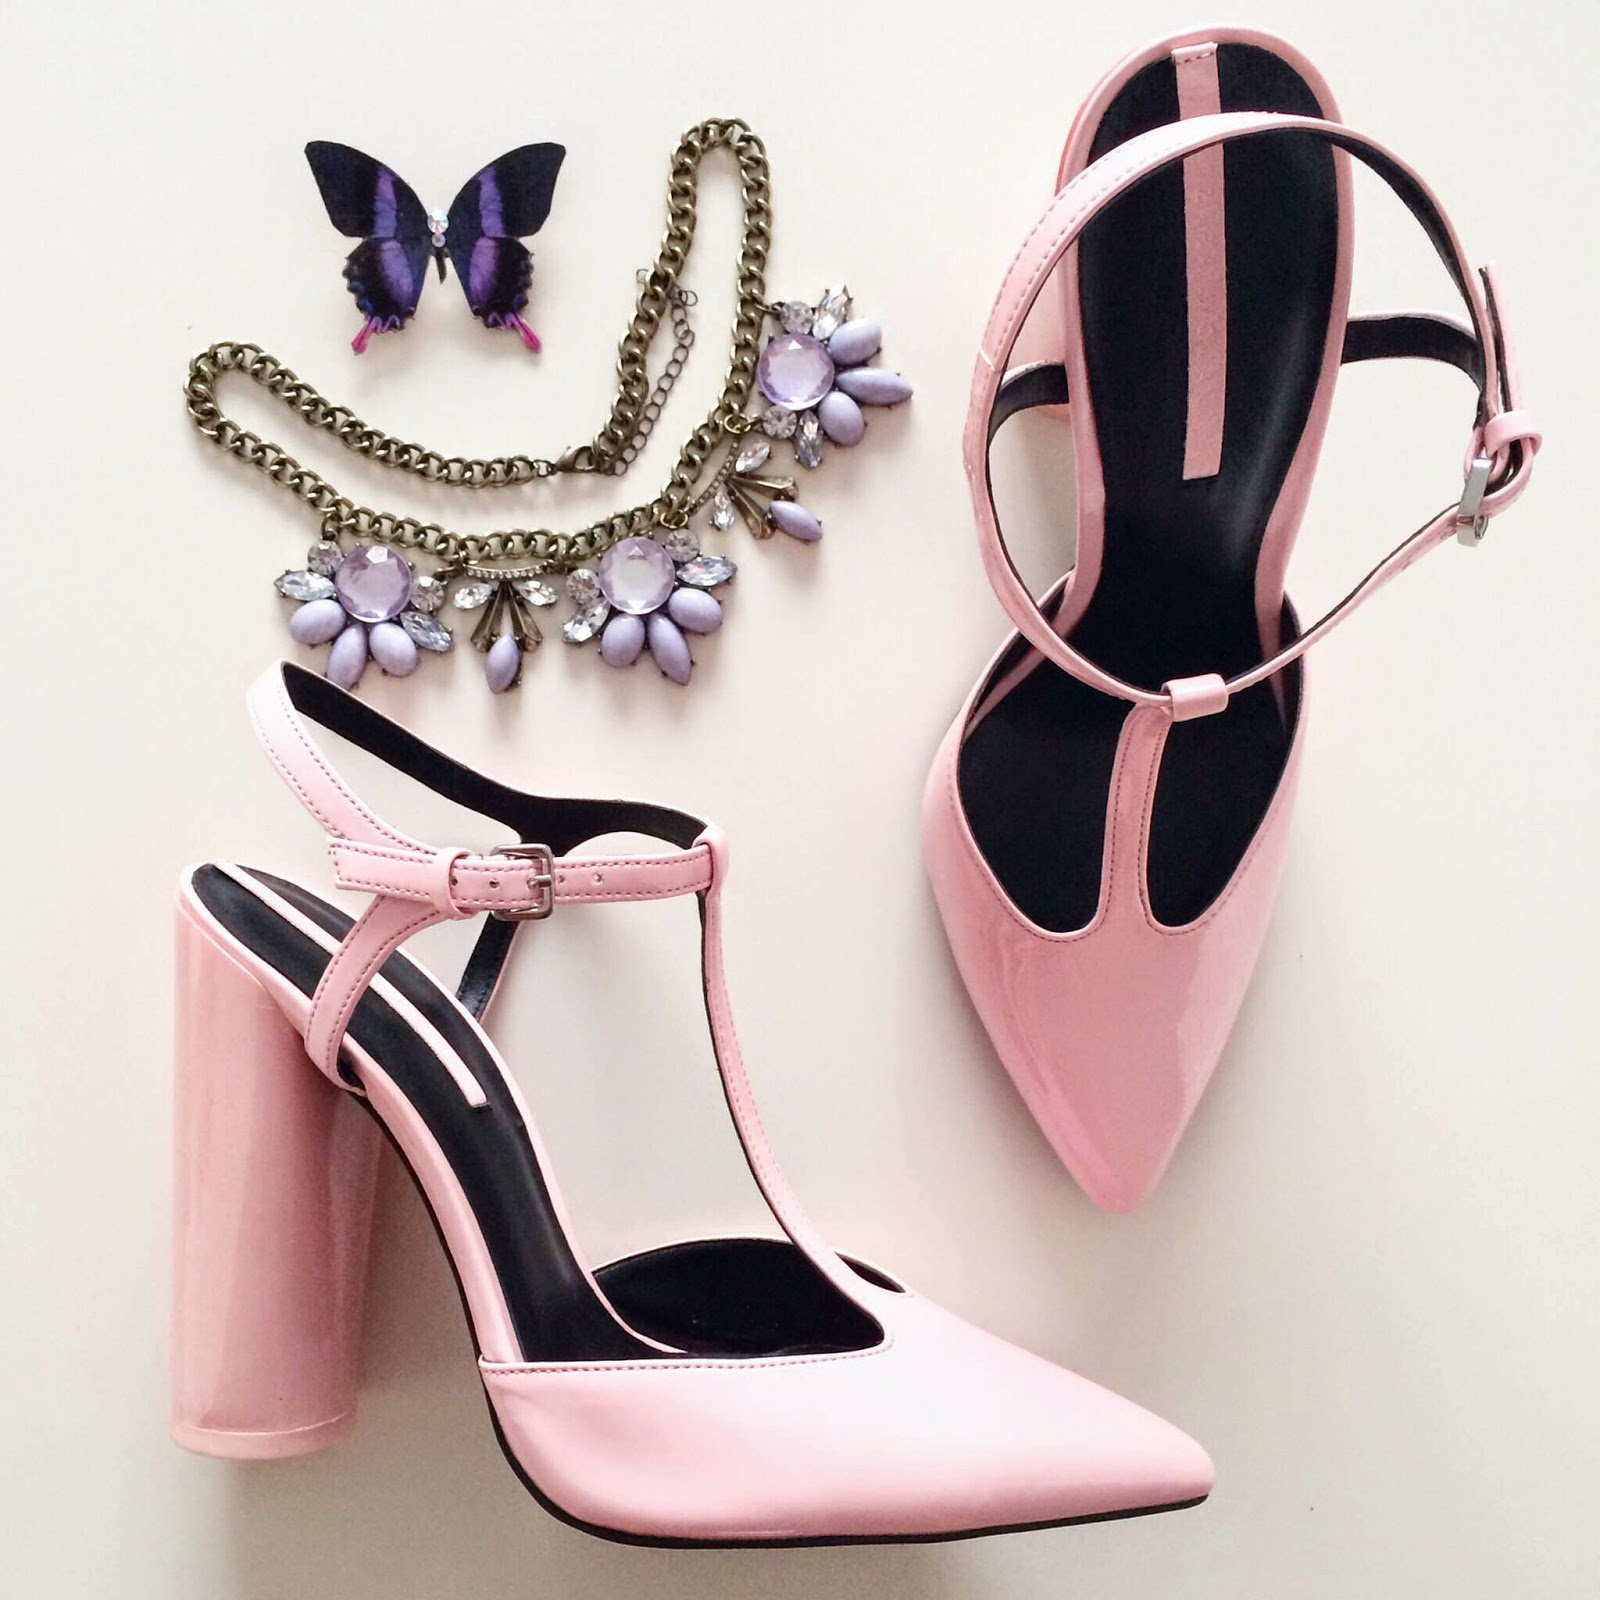 zara pink heels purple statement necklace butterfly brooch